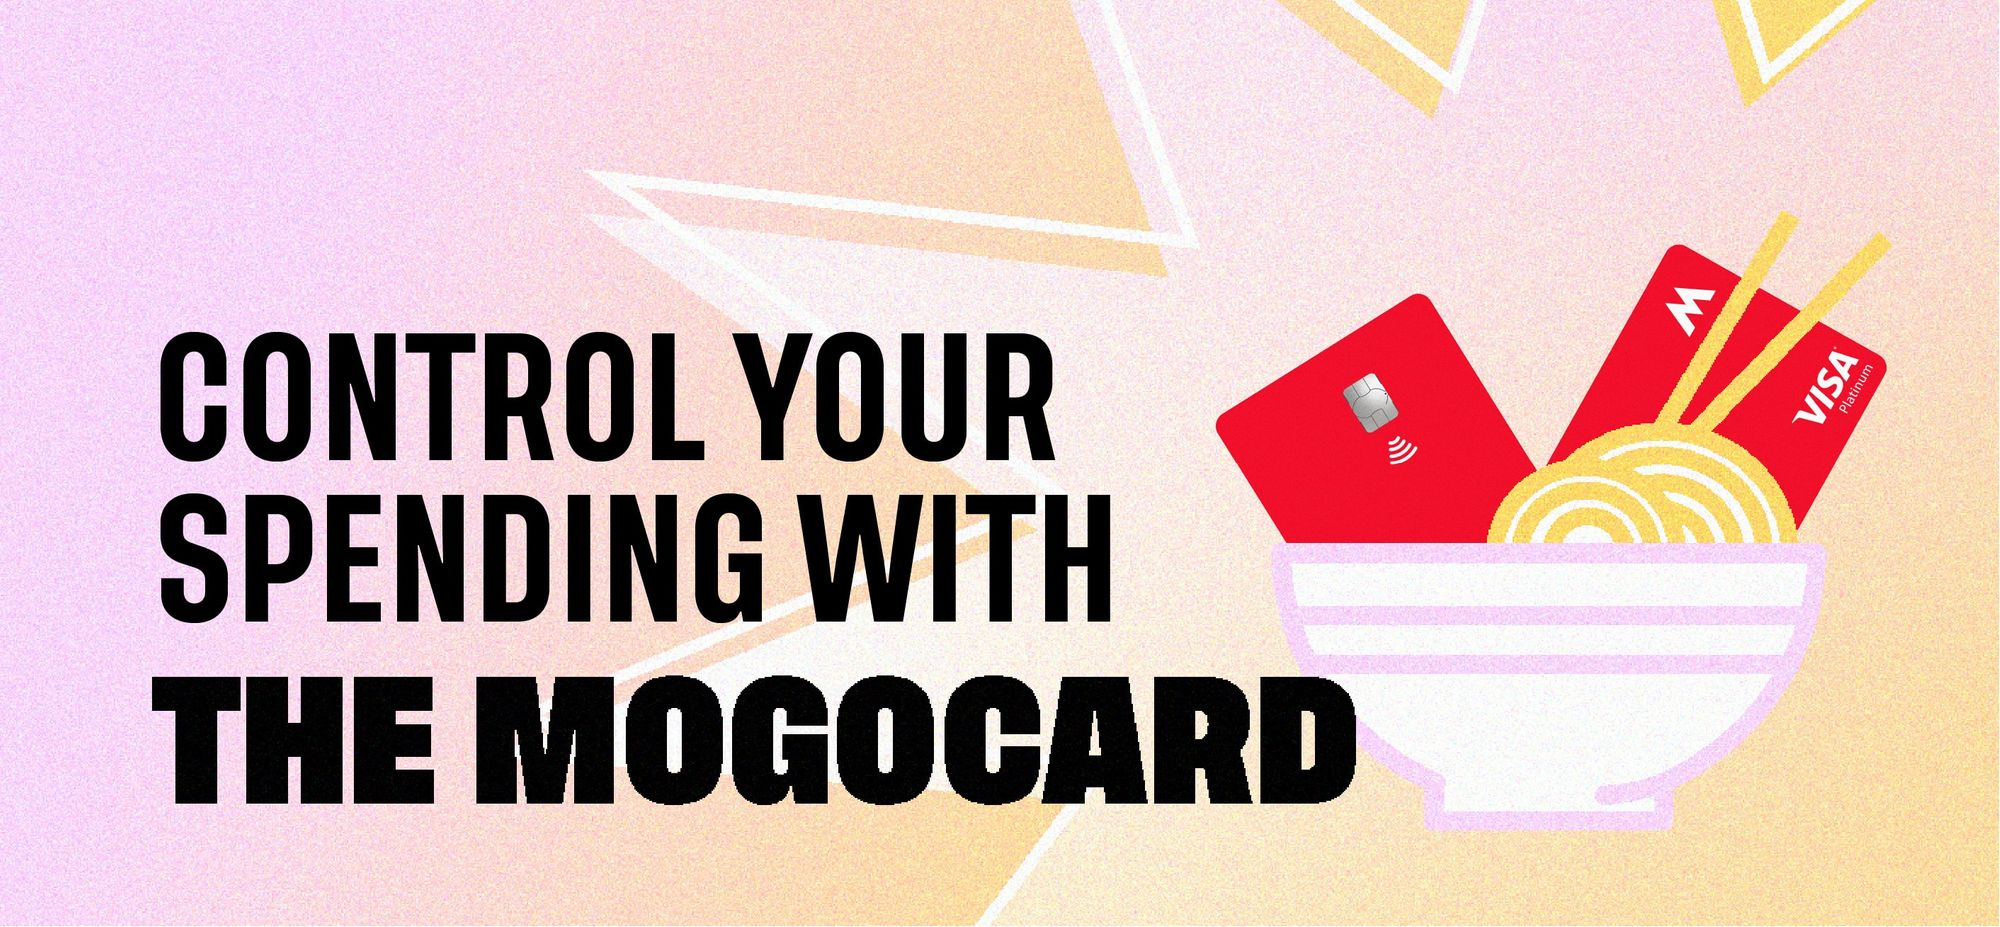 Control your spending with the Mogocard